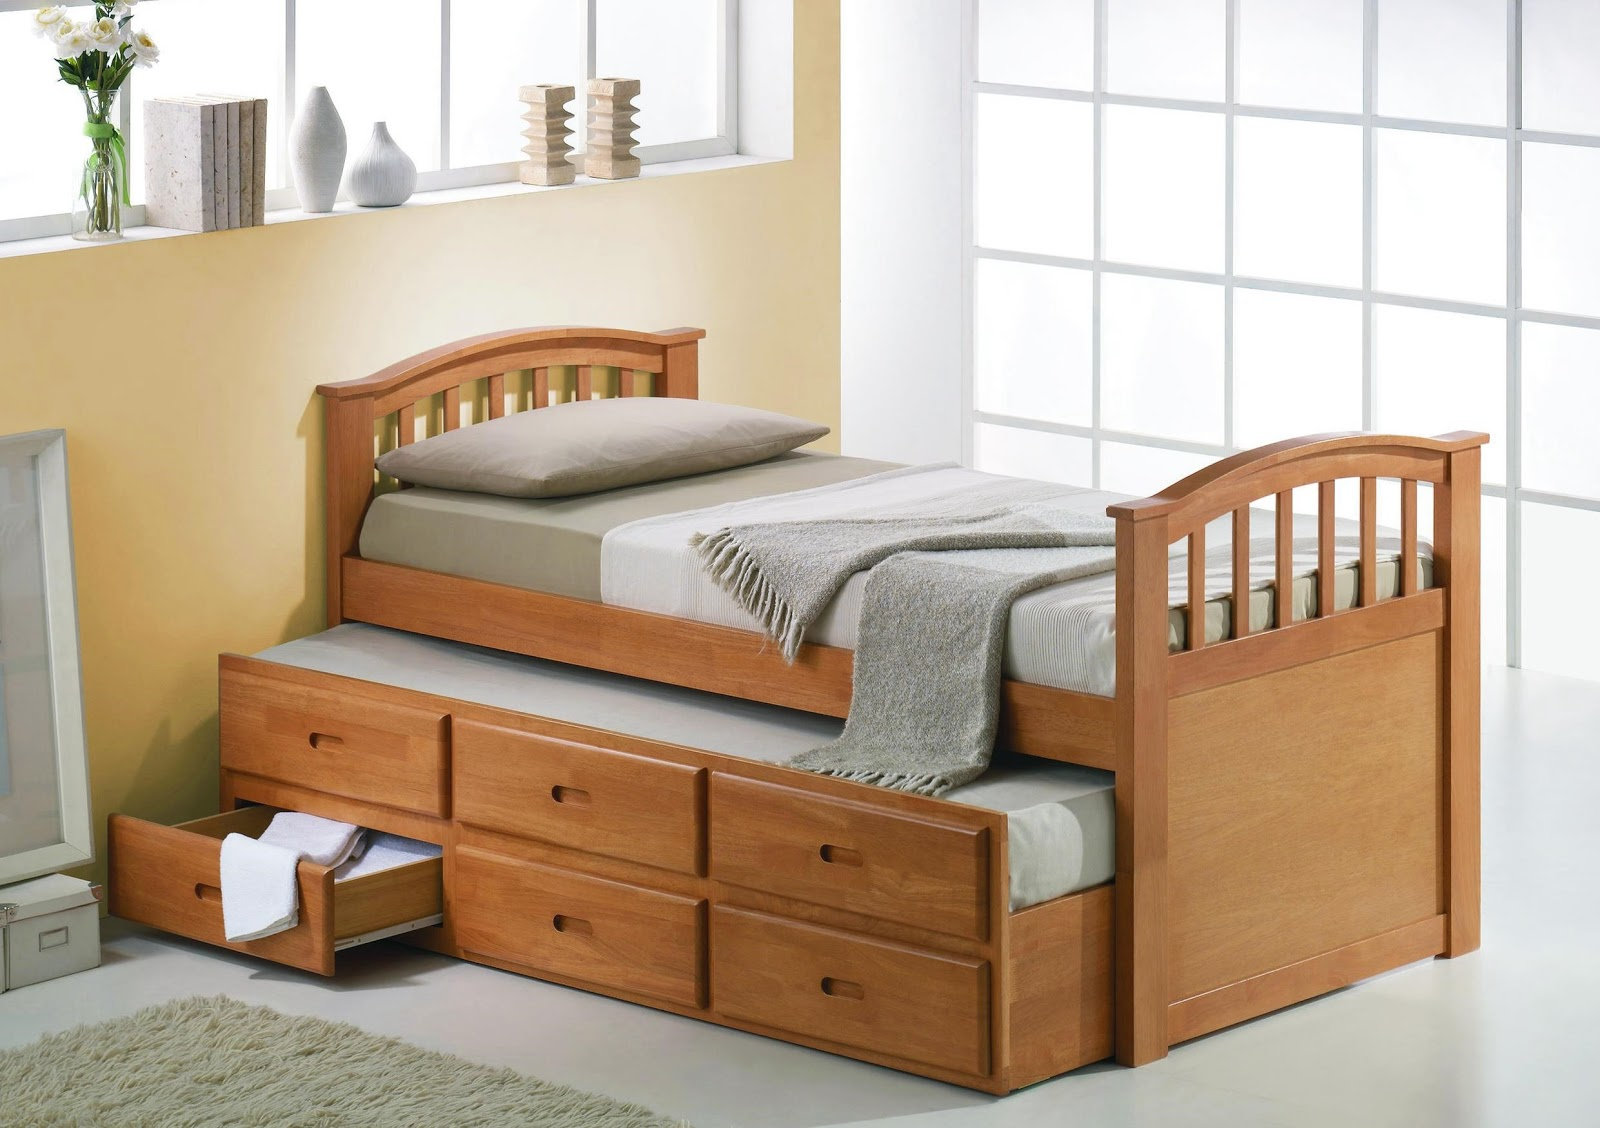 Woodworking wooden bed designs with storage in india PDF Free Download